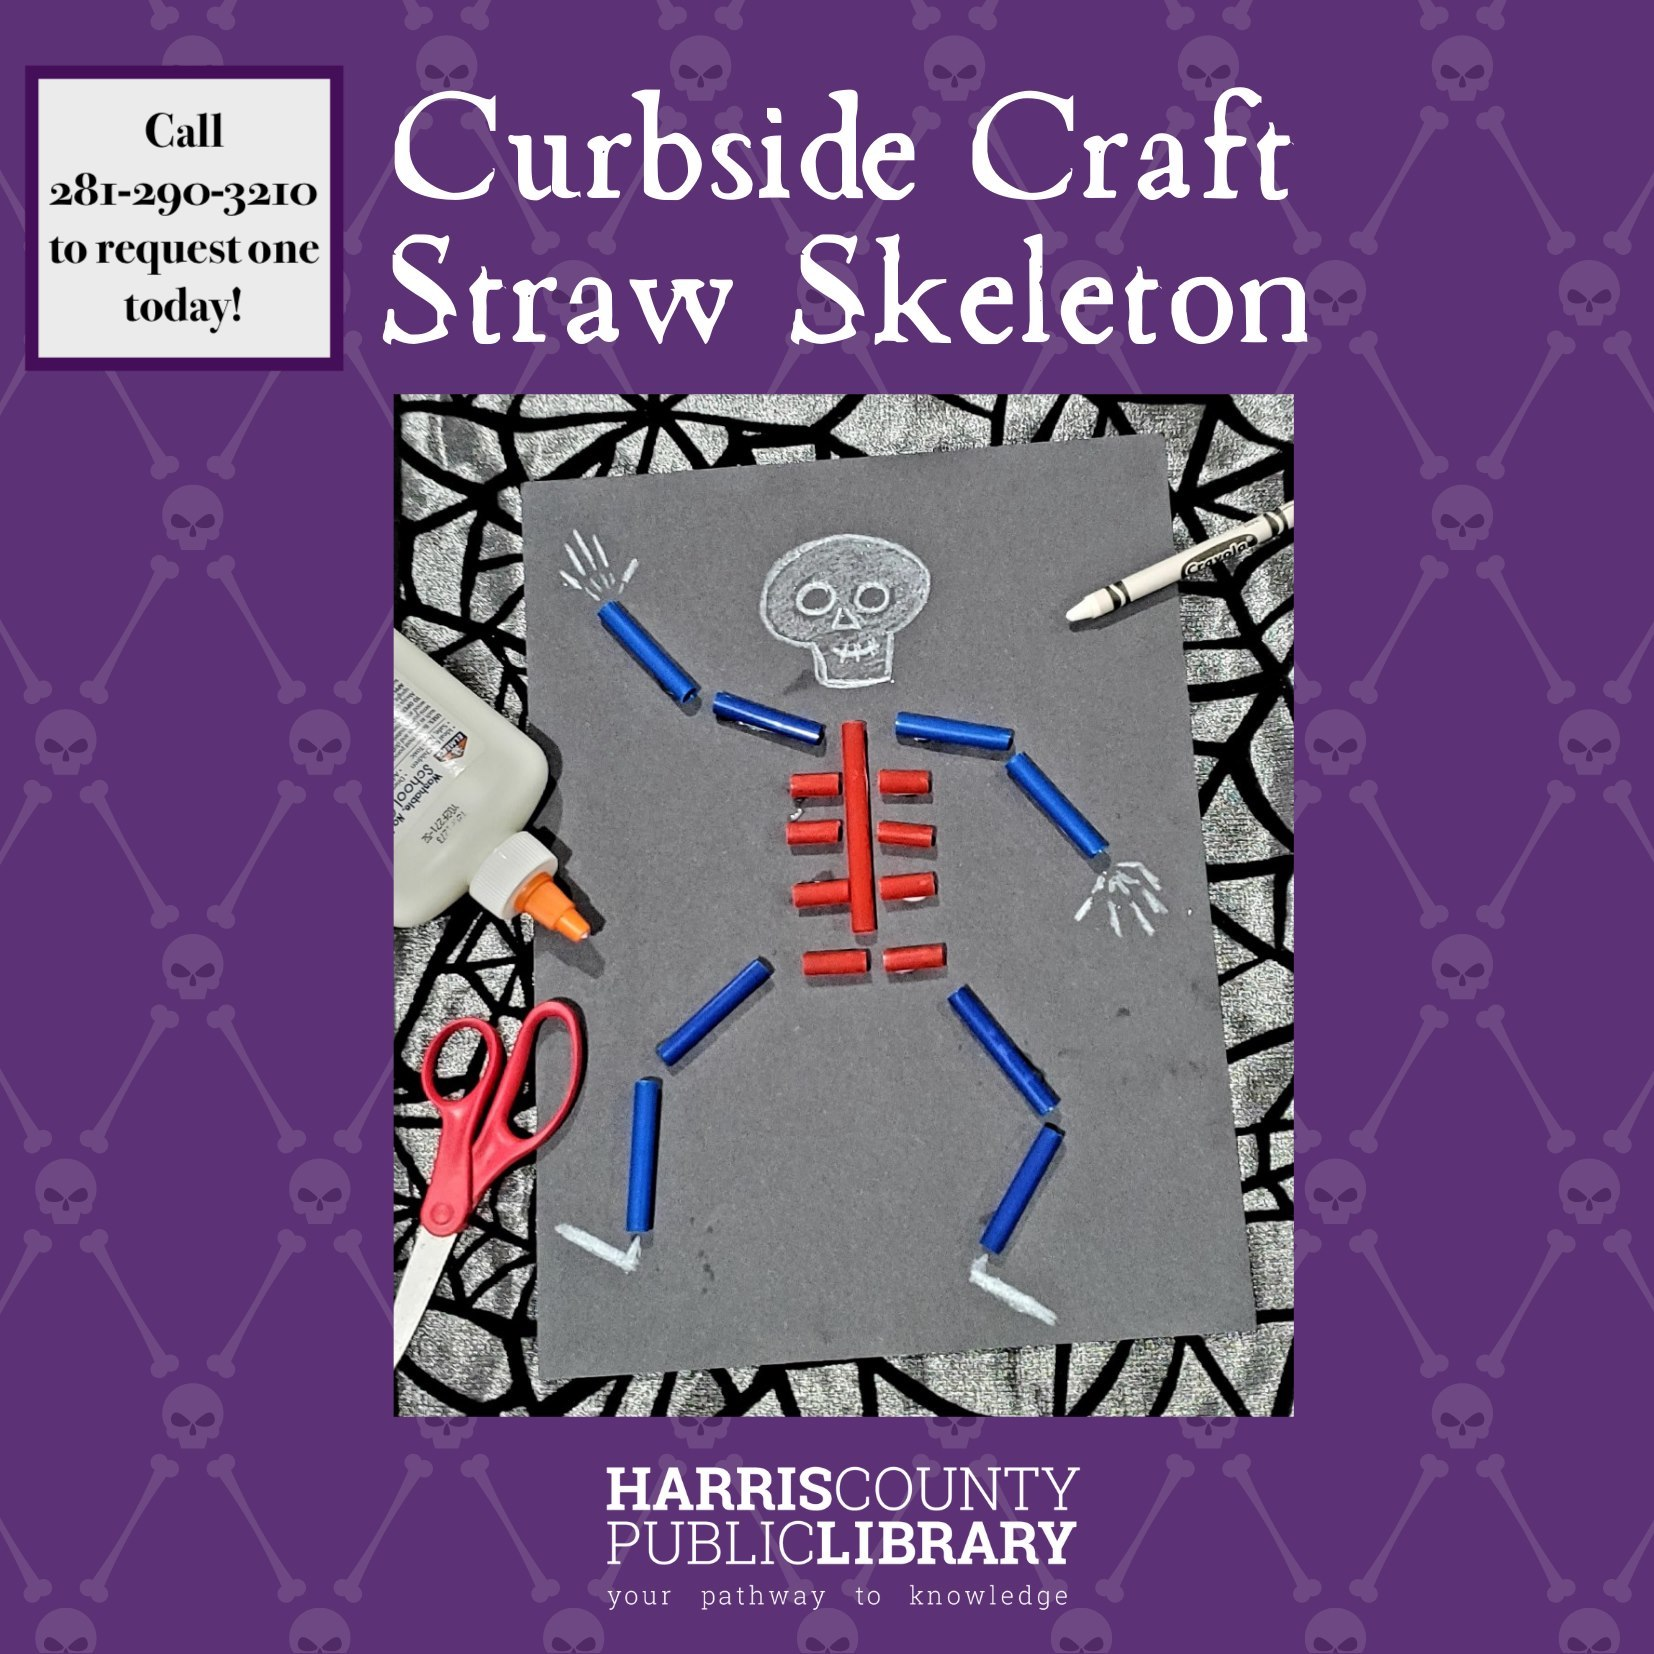 Straw Skeleton Craft call 281-290-3210 to request one today